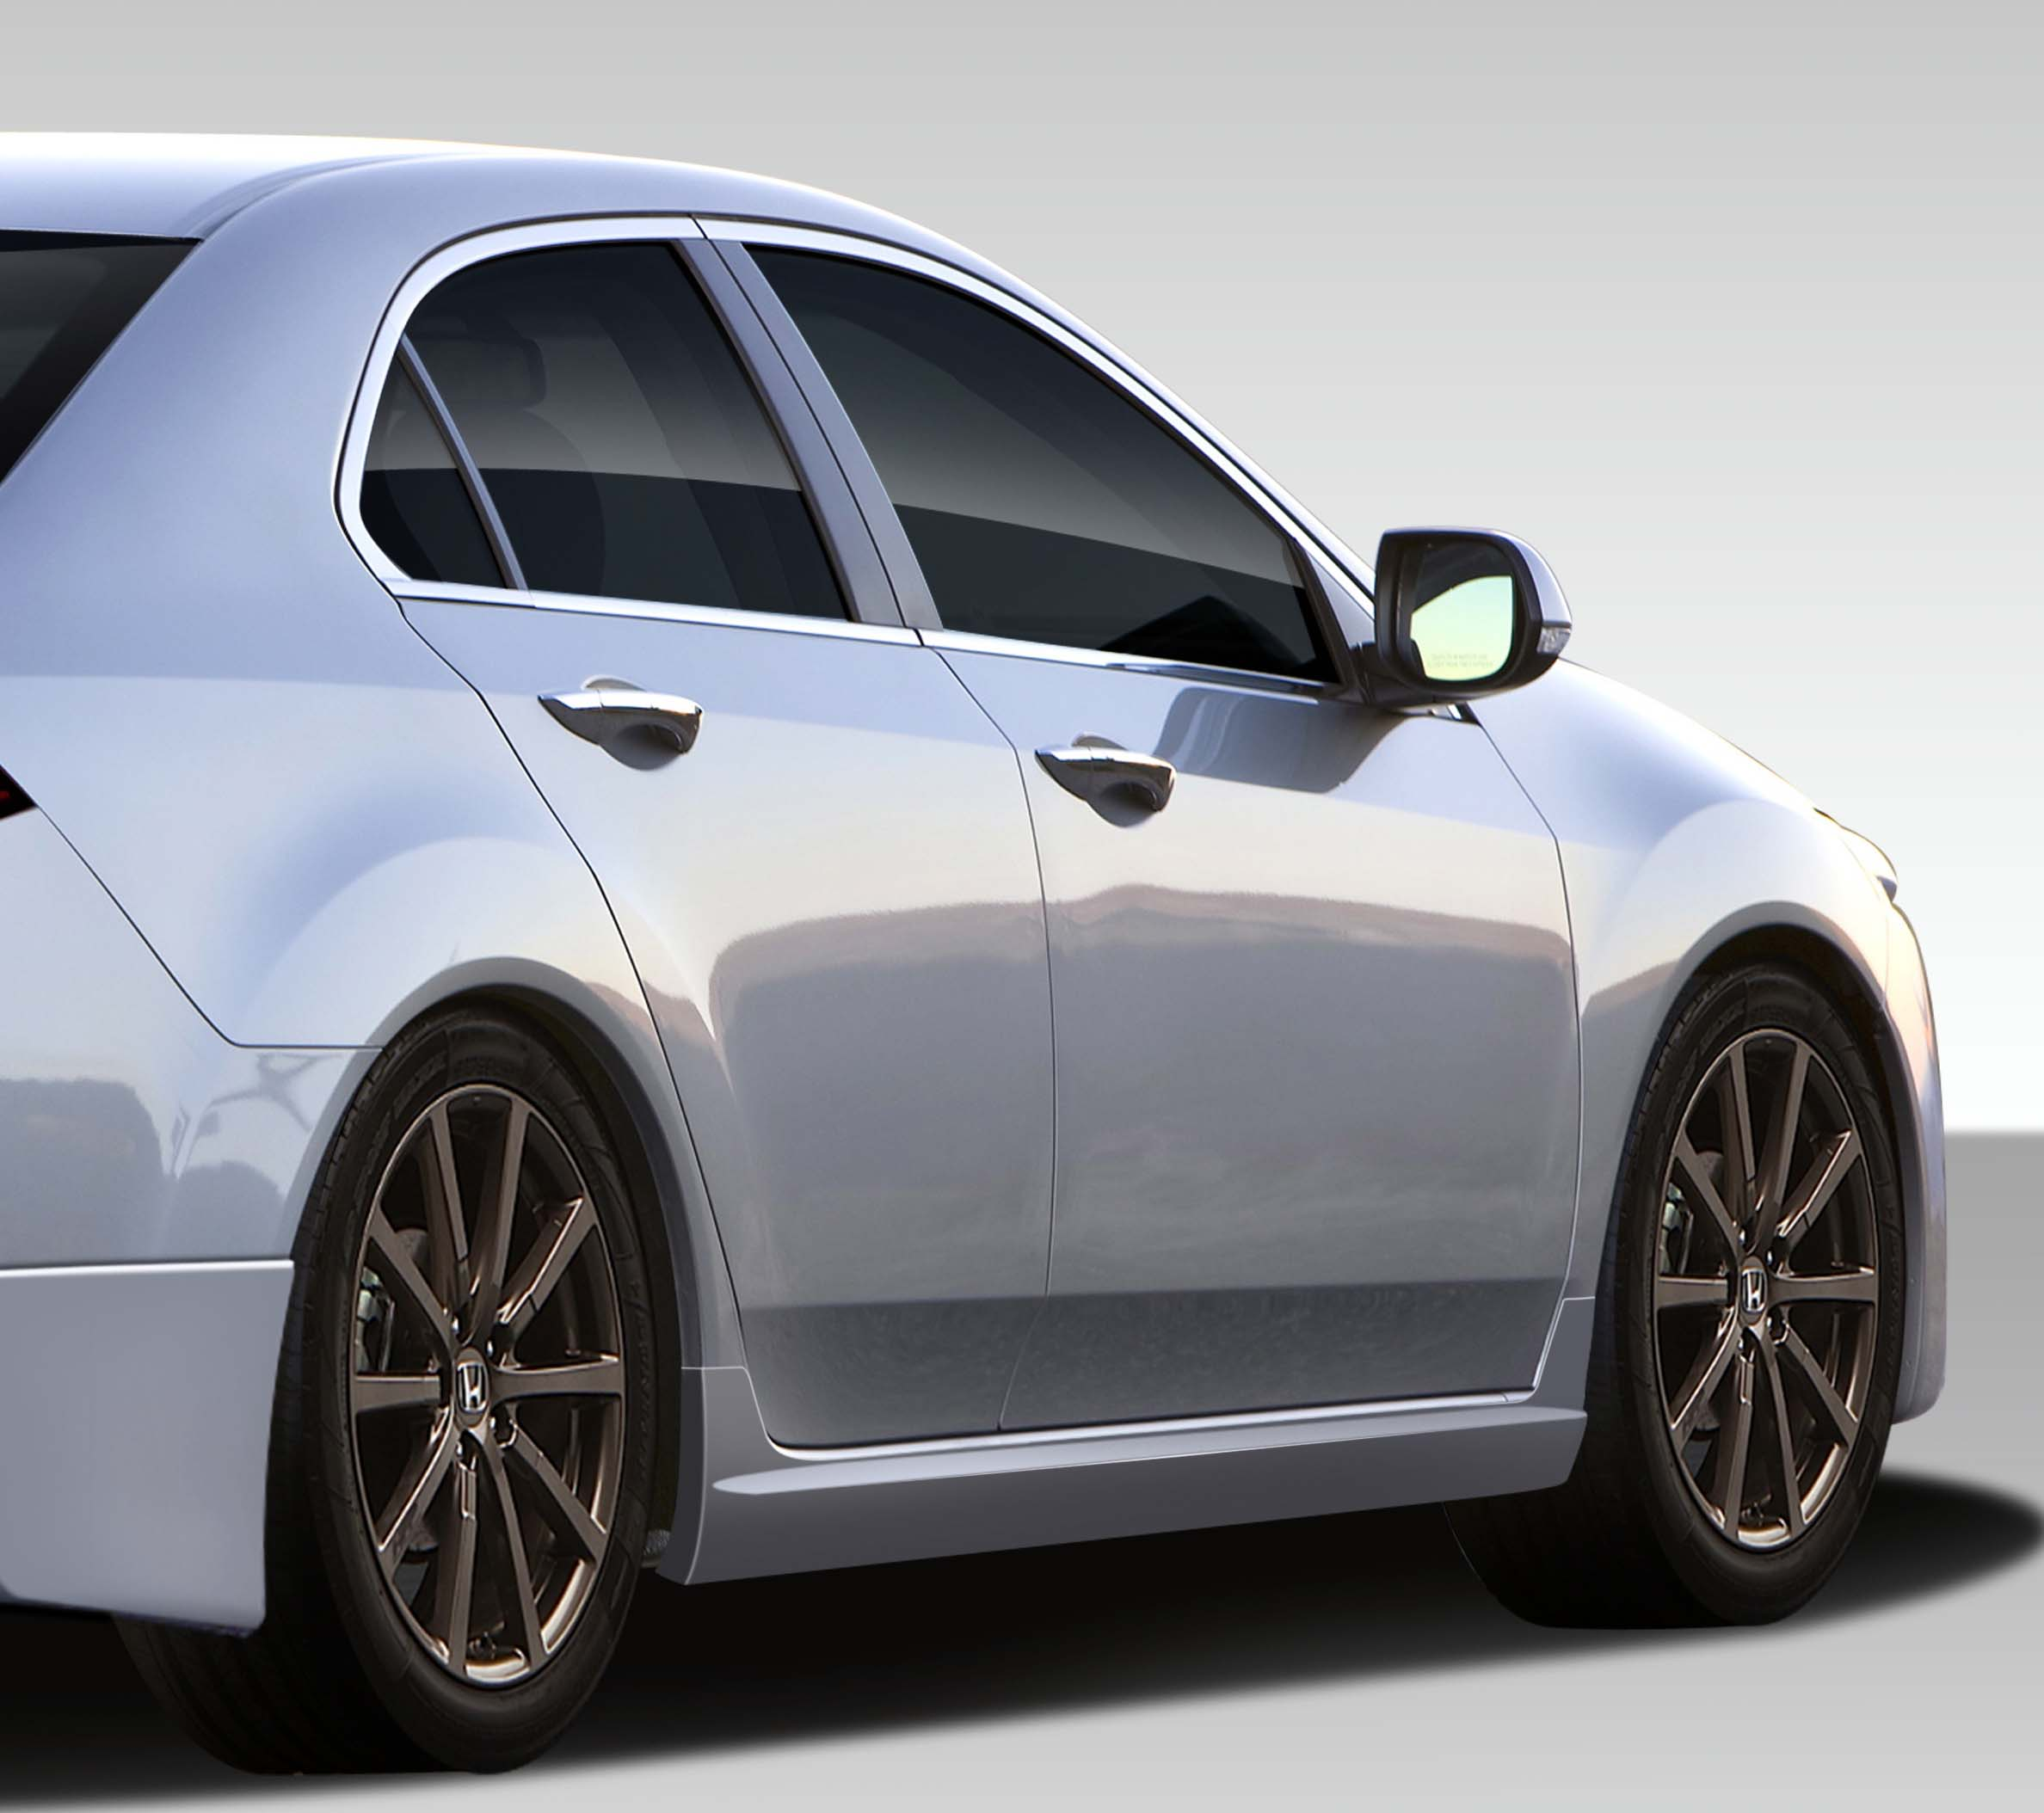 2012 Acura Tsx Special Edition For Sale: 2009-2014 Acura TSX Duraflex Type M Side Skirts Rocker